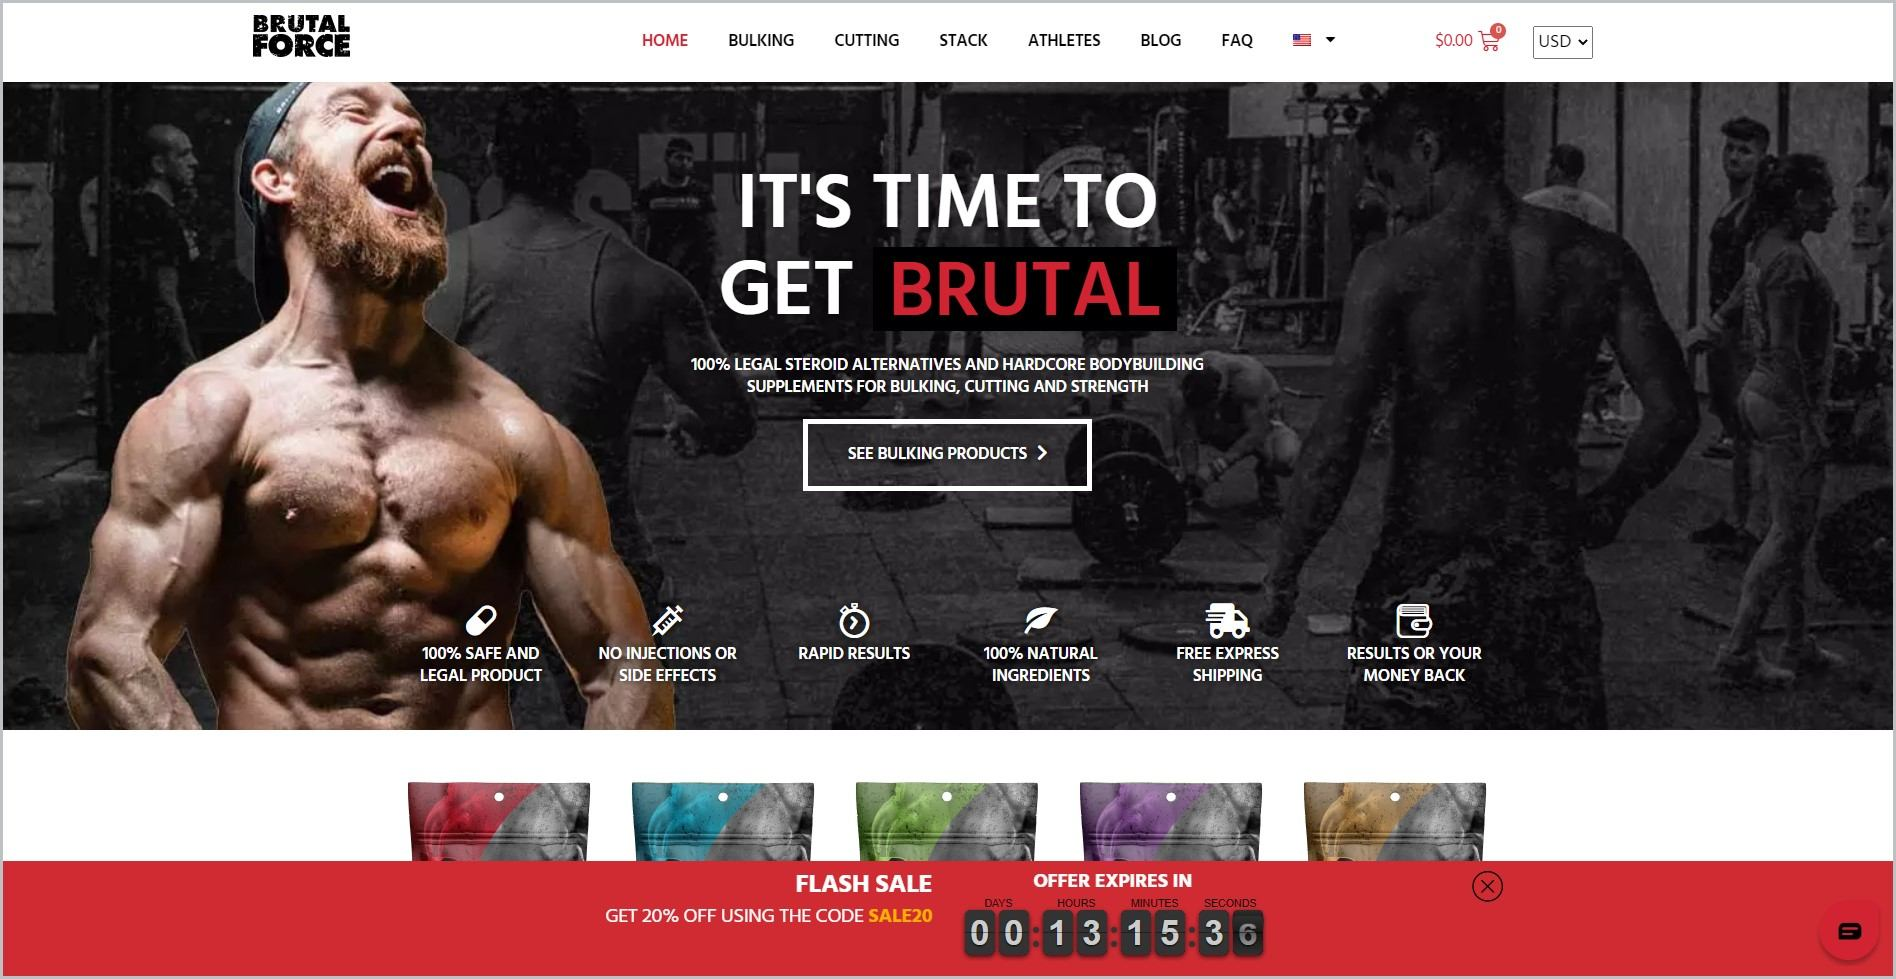 screenshot of Brutal Force homepage, with white header bearing the website's name and main navigation menu, it also showcases an image of a laughing man flexing his muscles